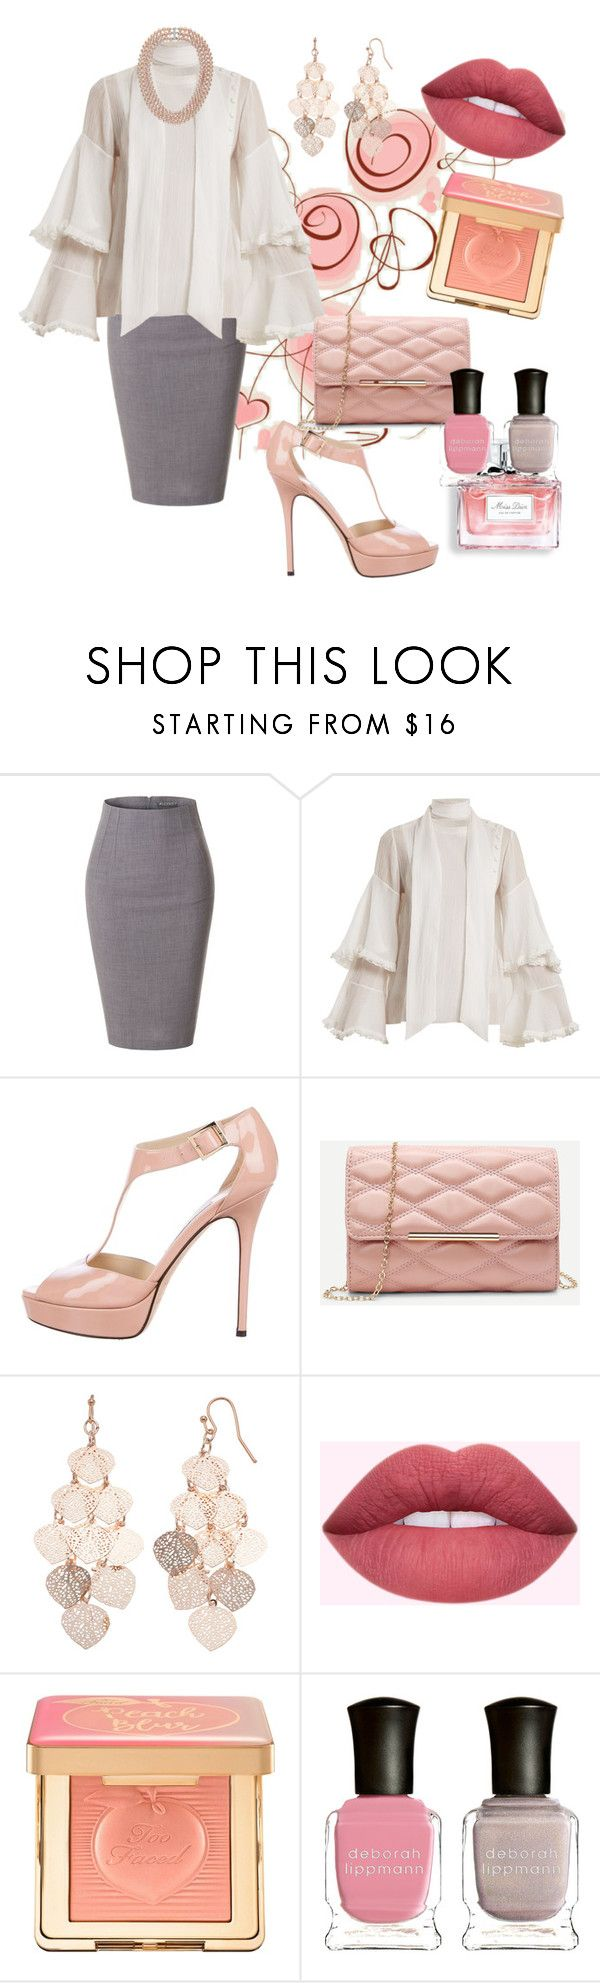 """ladys fashions"" by creativegirl247 ❤ liked on Polyvore featuring LE3NO, Chloé, Jimmy Choo, Christian Dior, LC Lauren Conrad, Too Faced Cosmetics and Deborah Lippmann"